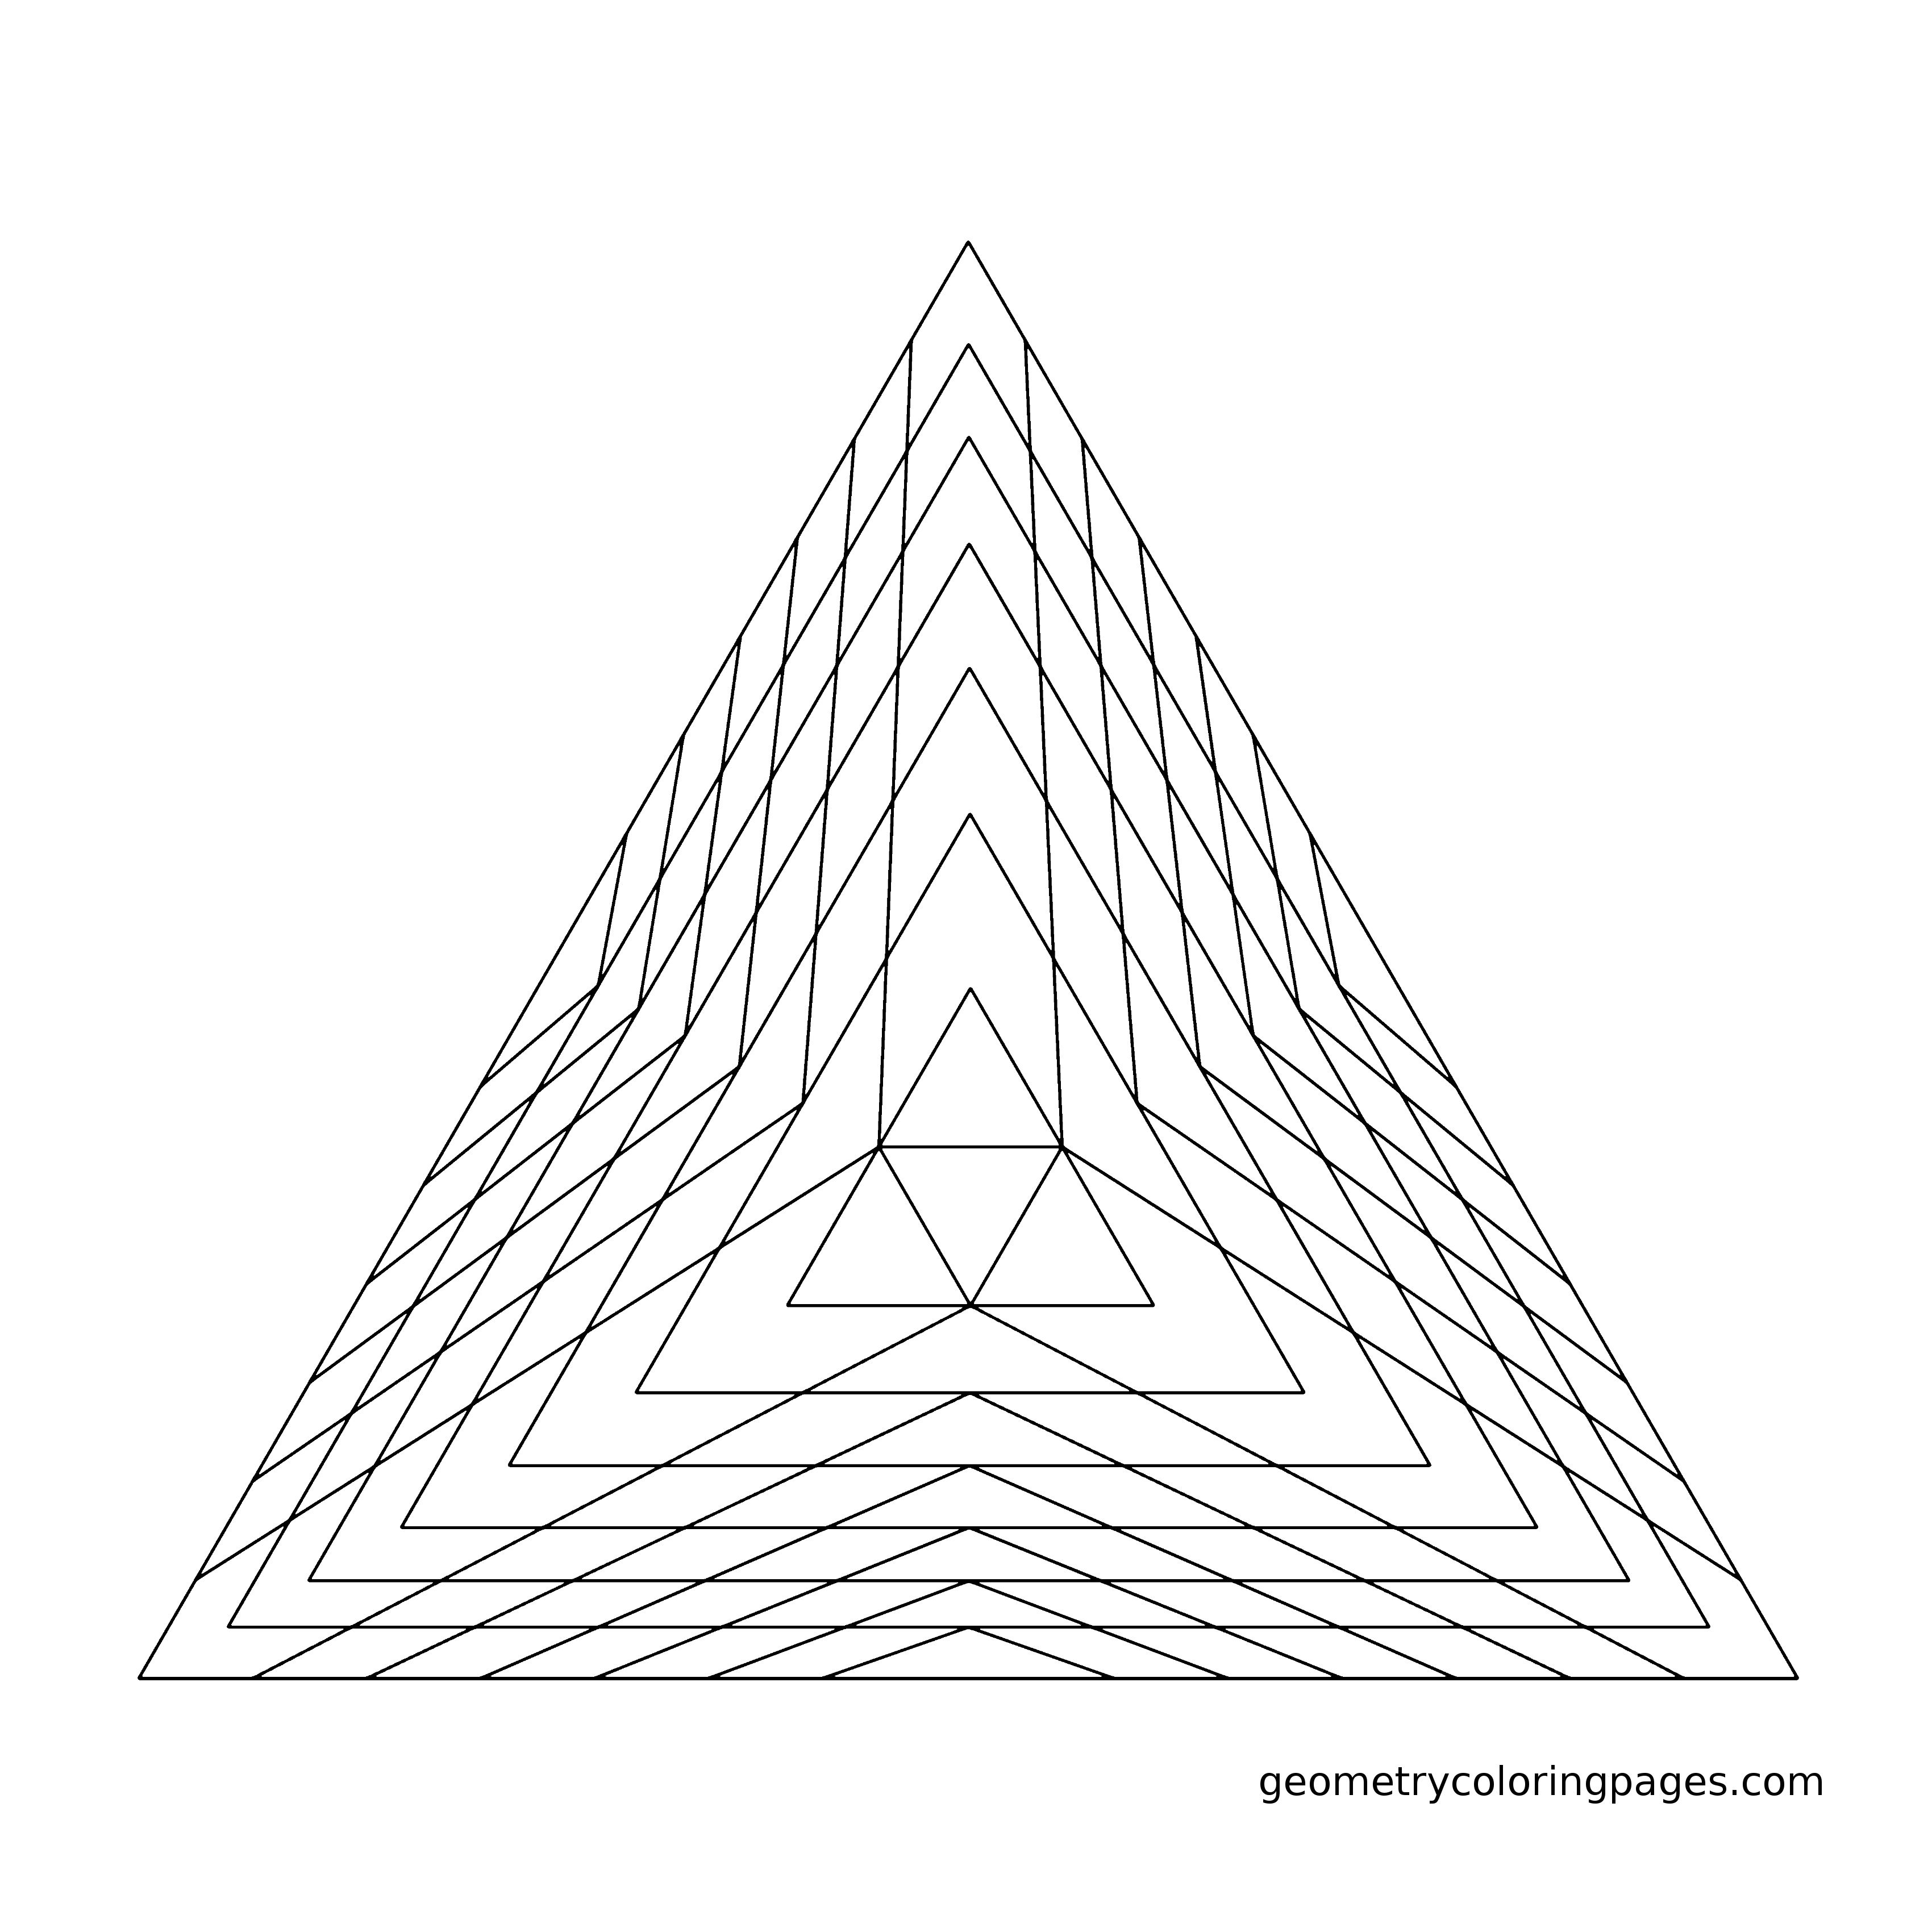 Geometry Coloring Page Pyramid From Geometrycoloringpages